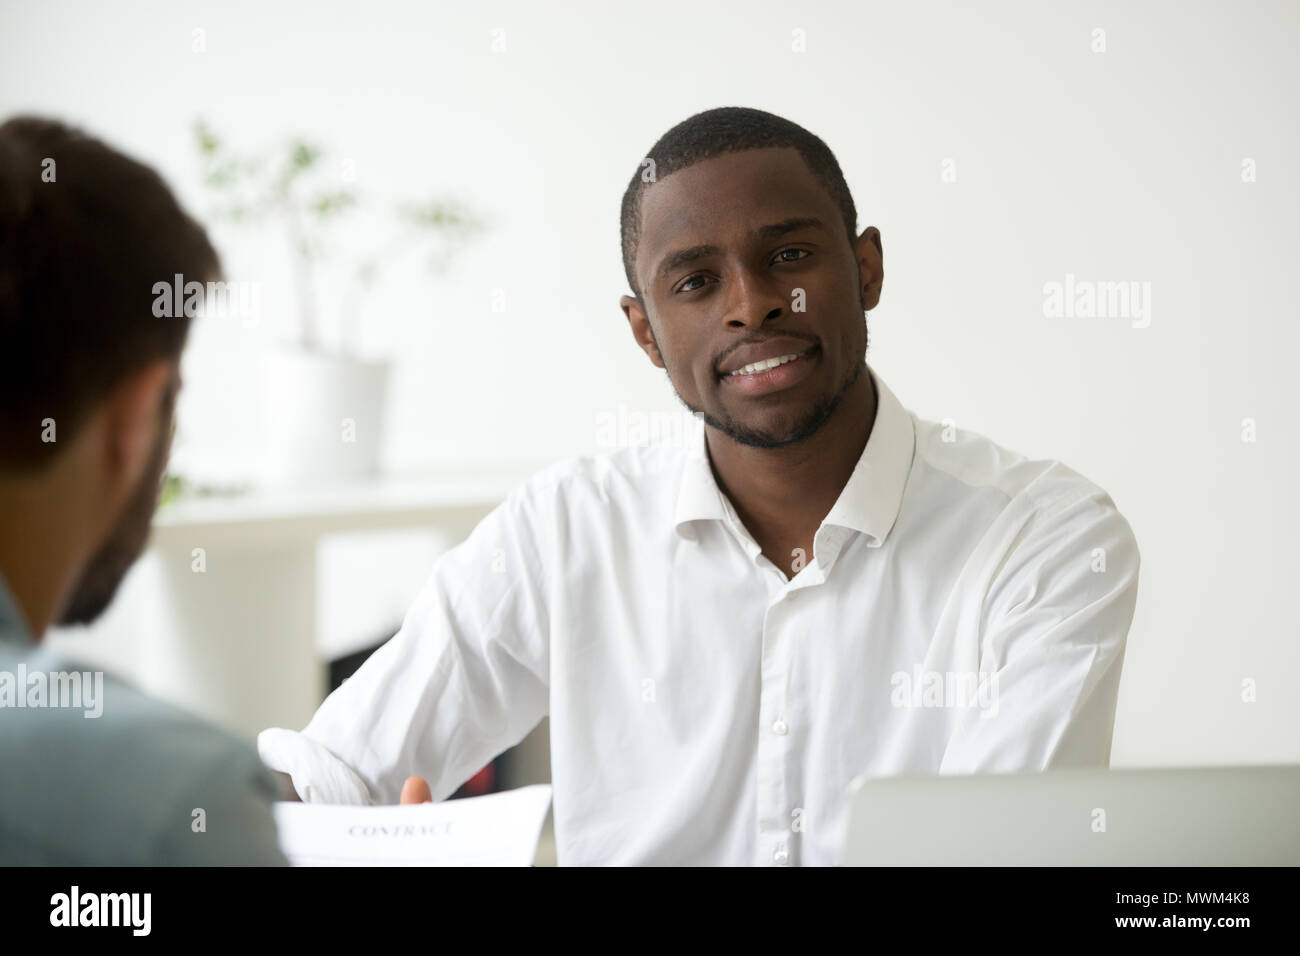 Smiling African American worker looking at camera in office Photo Stock